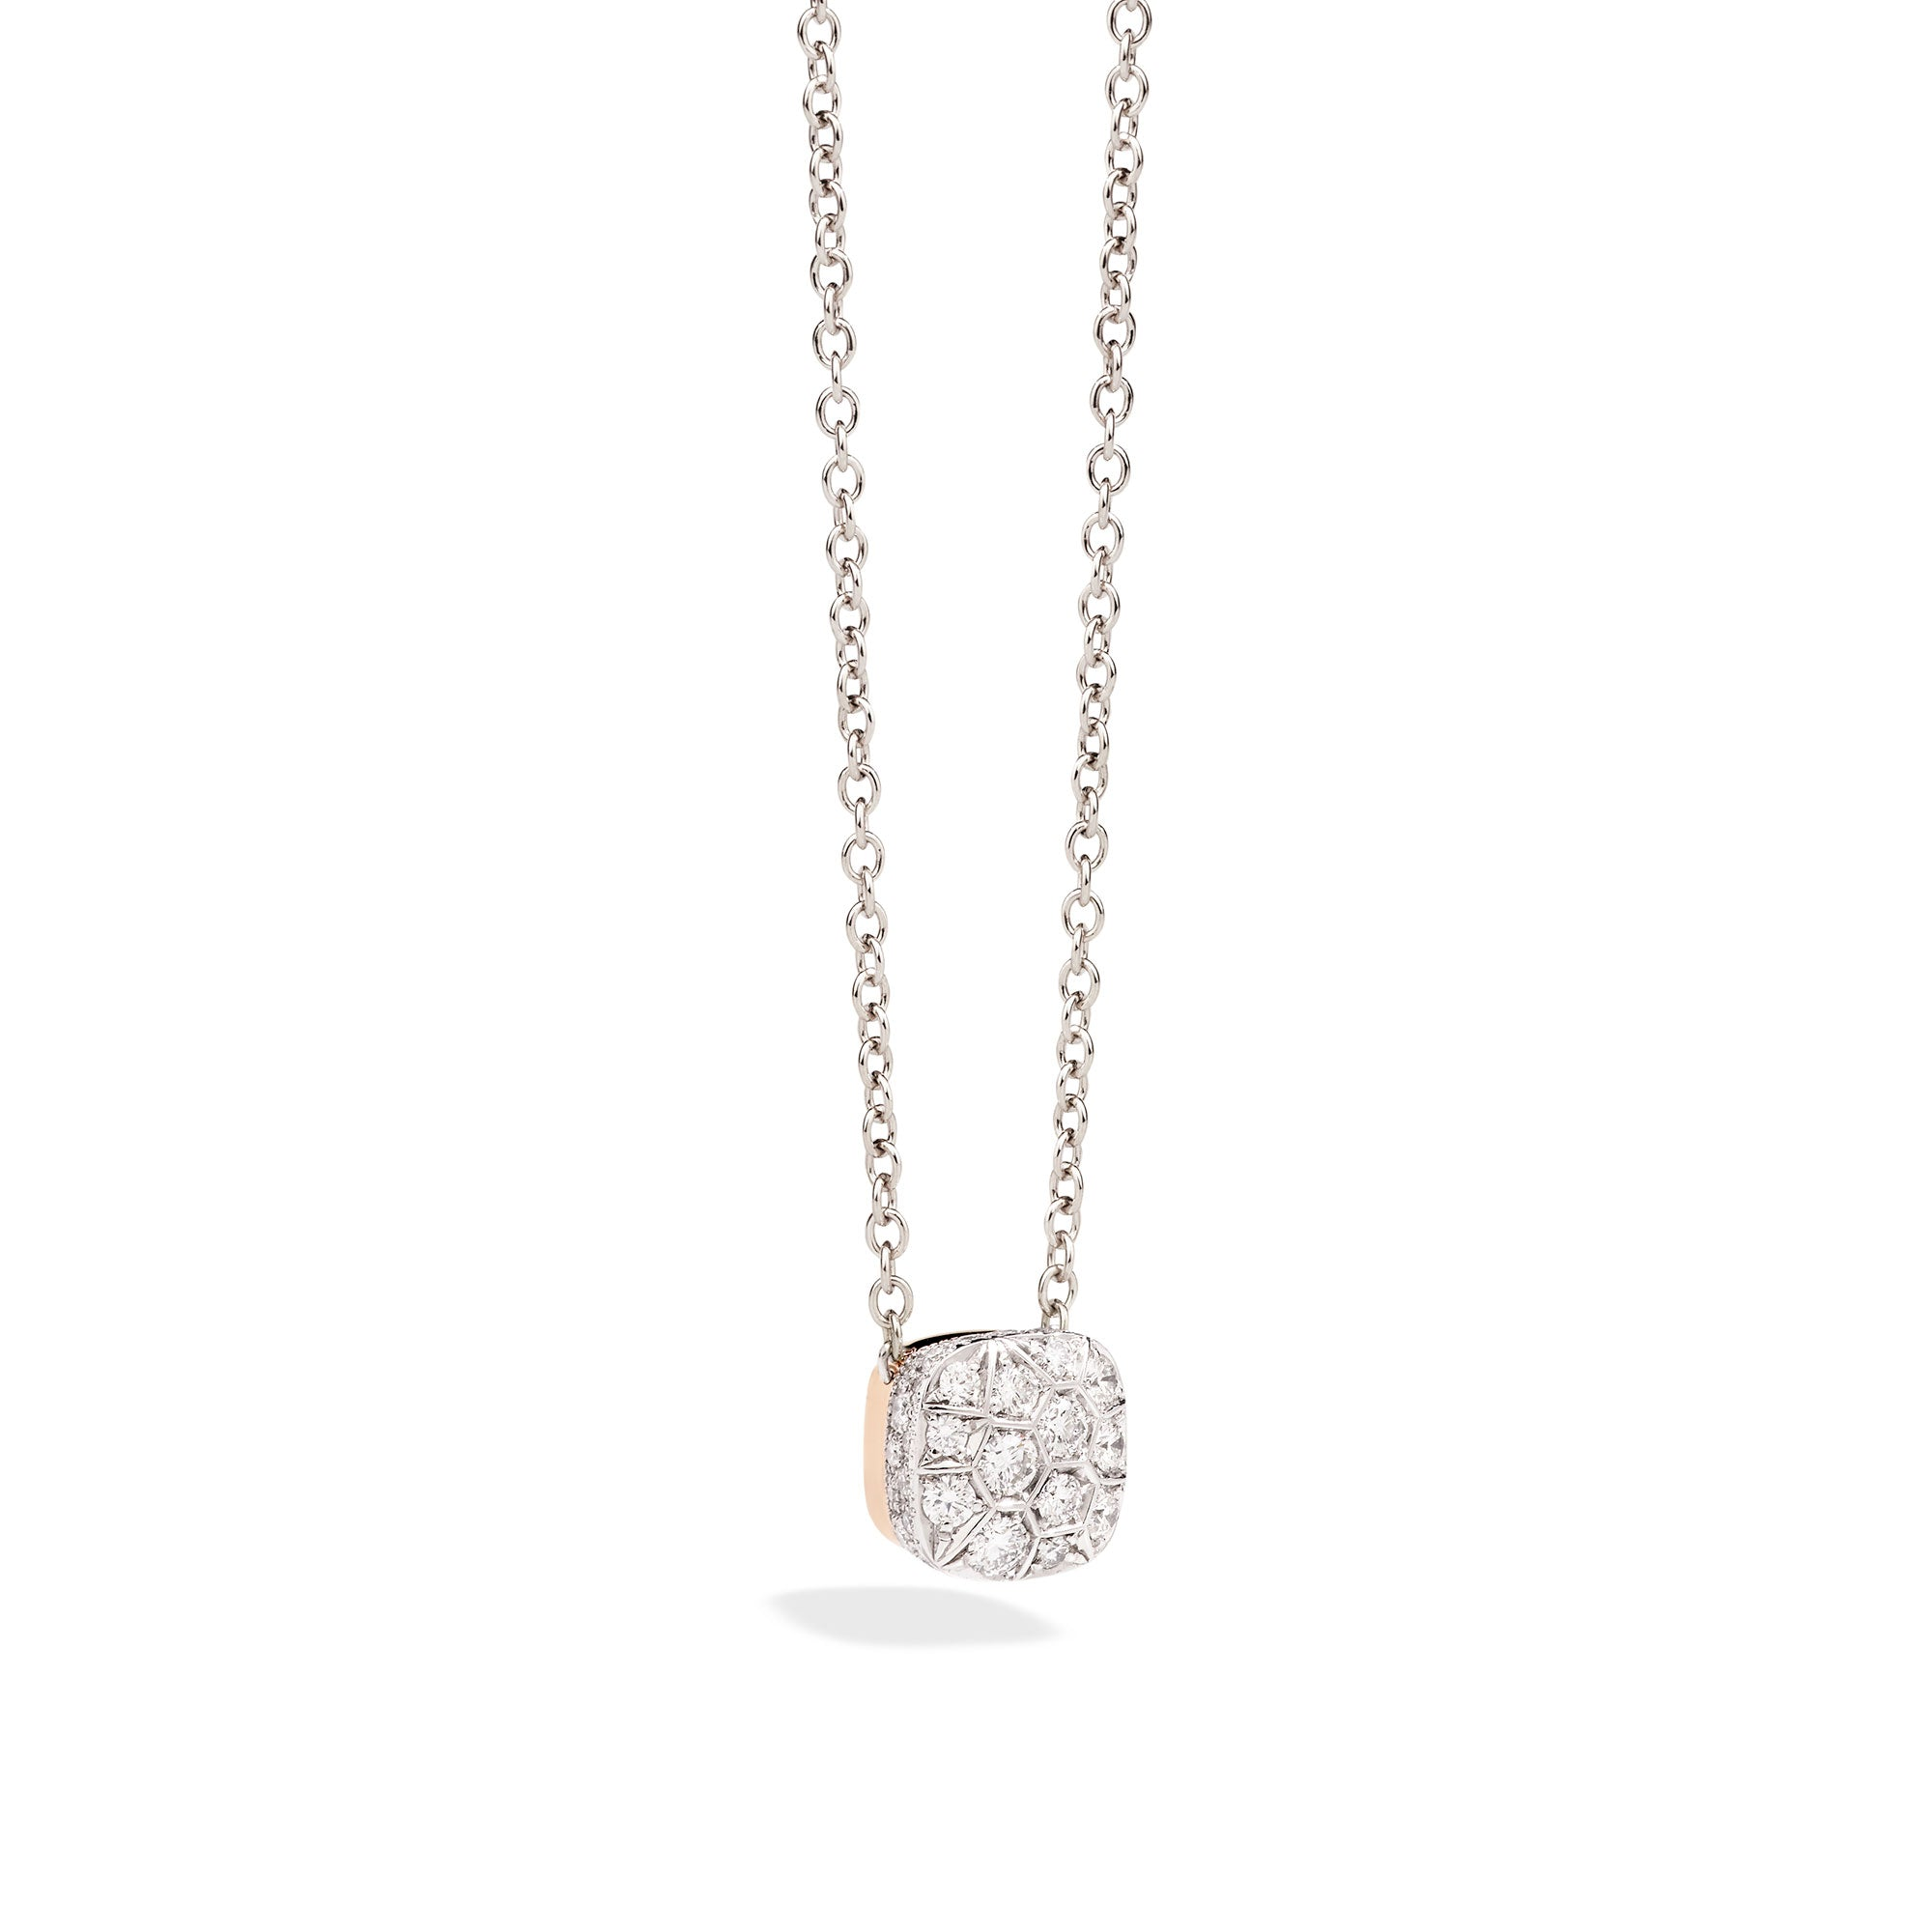 Nudo Necklace with Large Pendant in 18k Rose and White Gold with Diamonds - Orsini Jewellers NZ